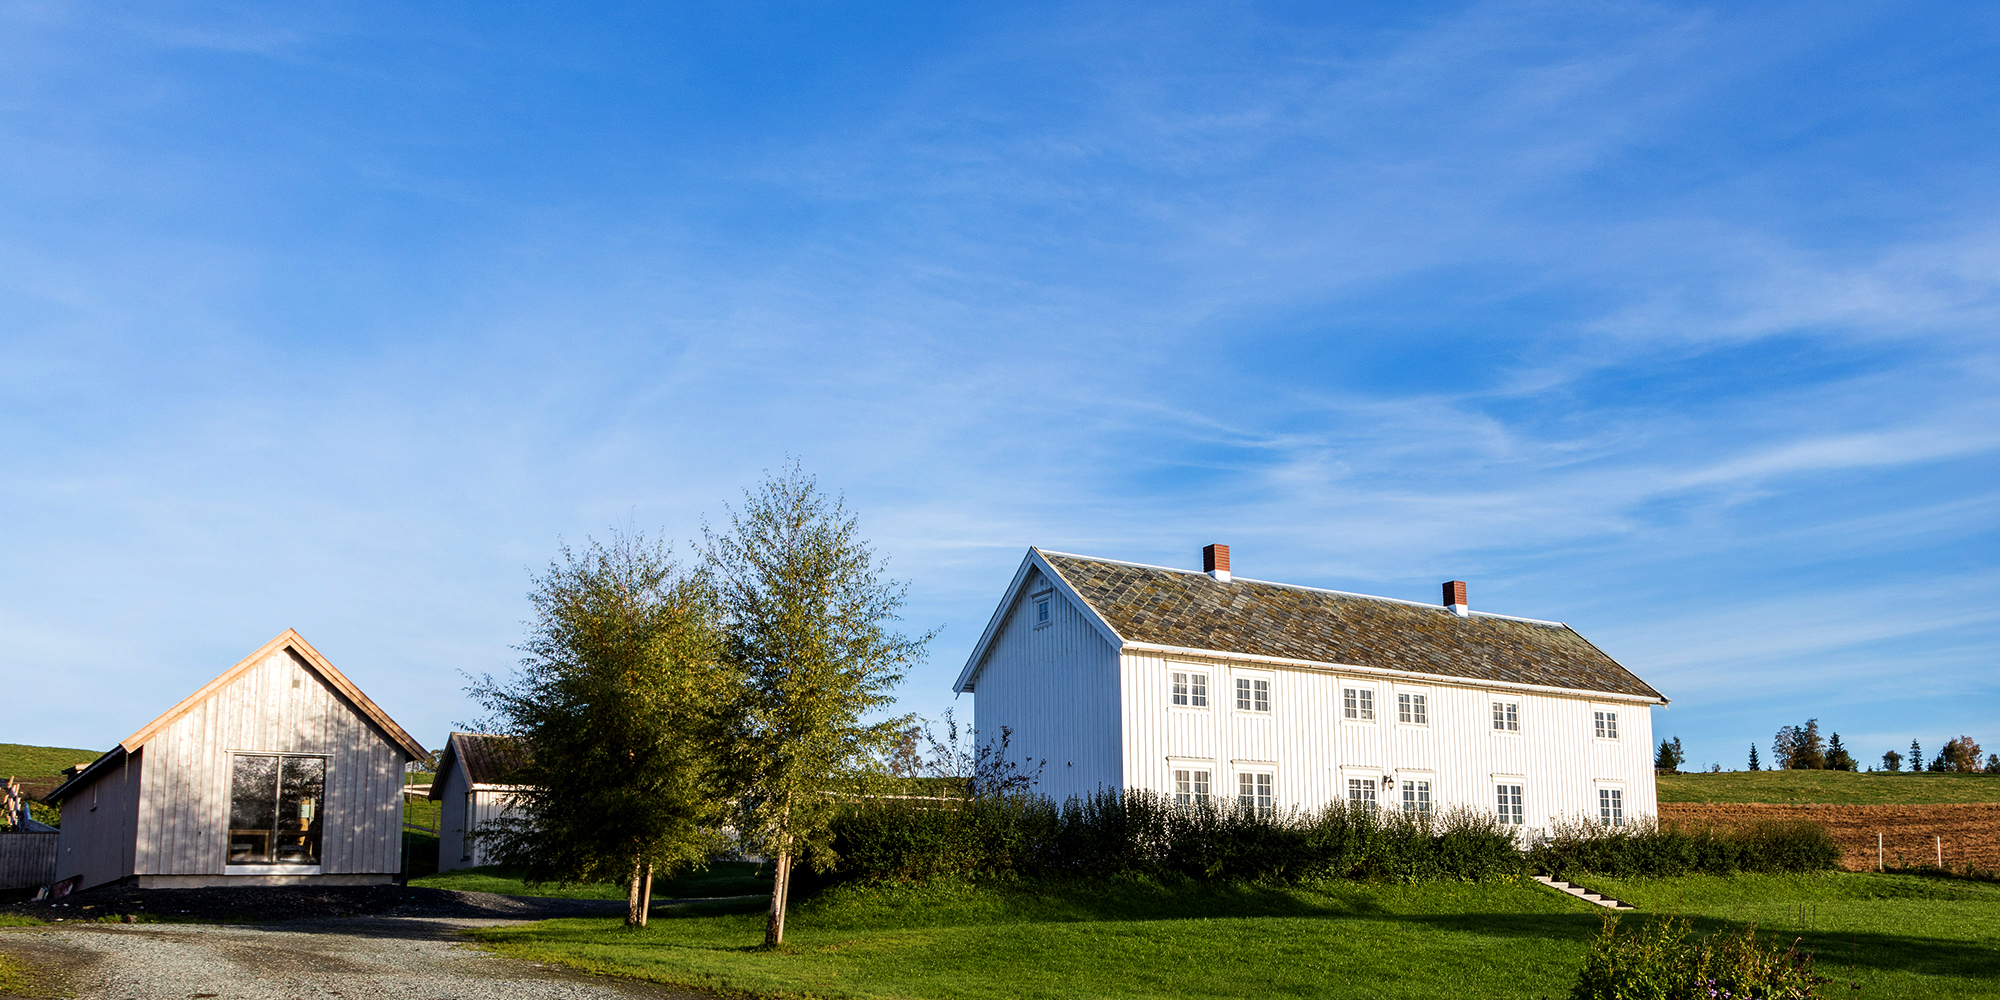 Husfrua Country Farm Hotel, along the Golden Route, Inderøy. Copyright: Husfrua Gårdshotell